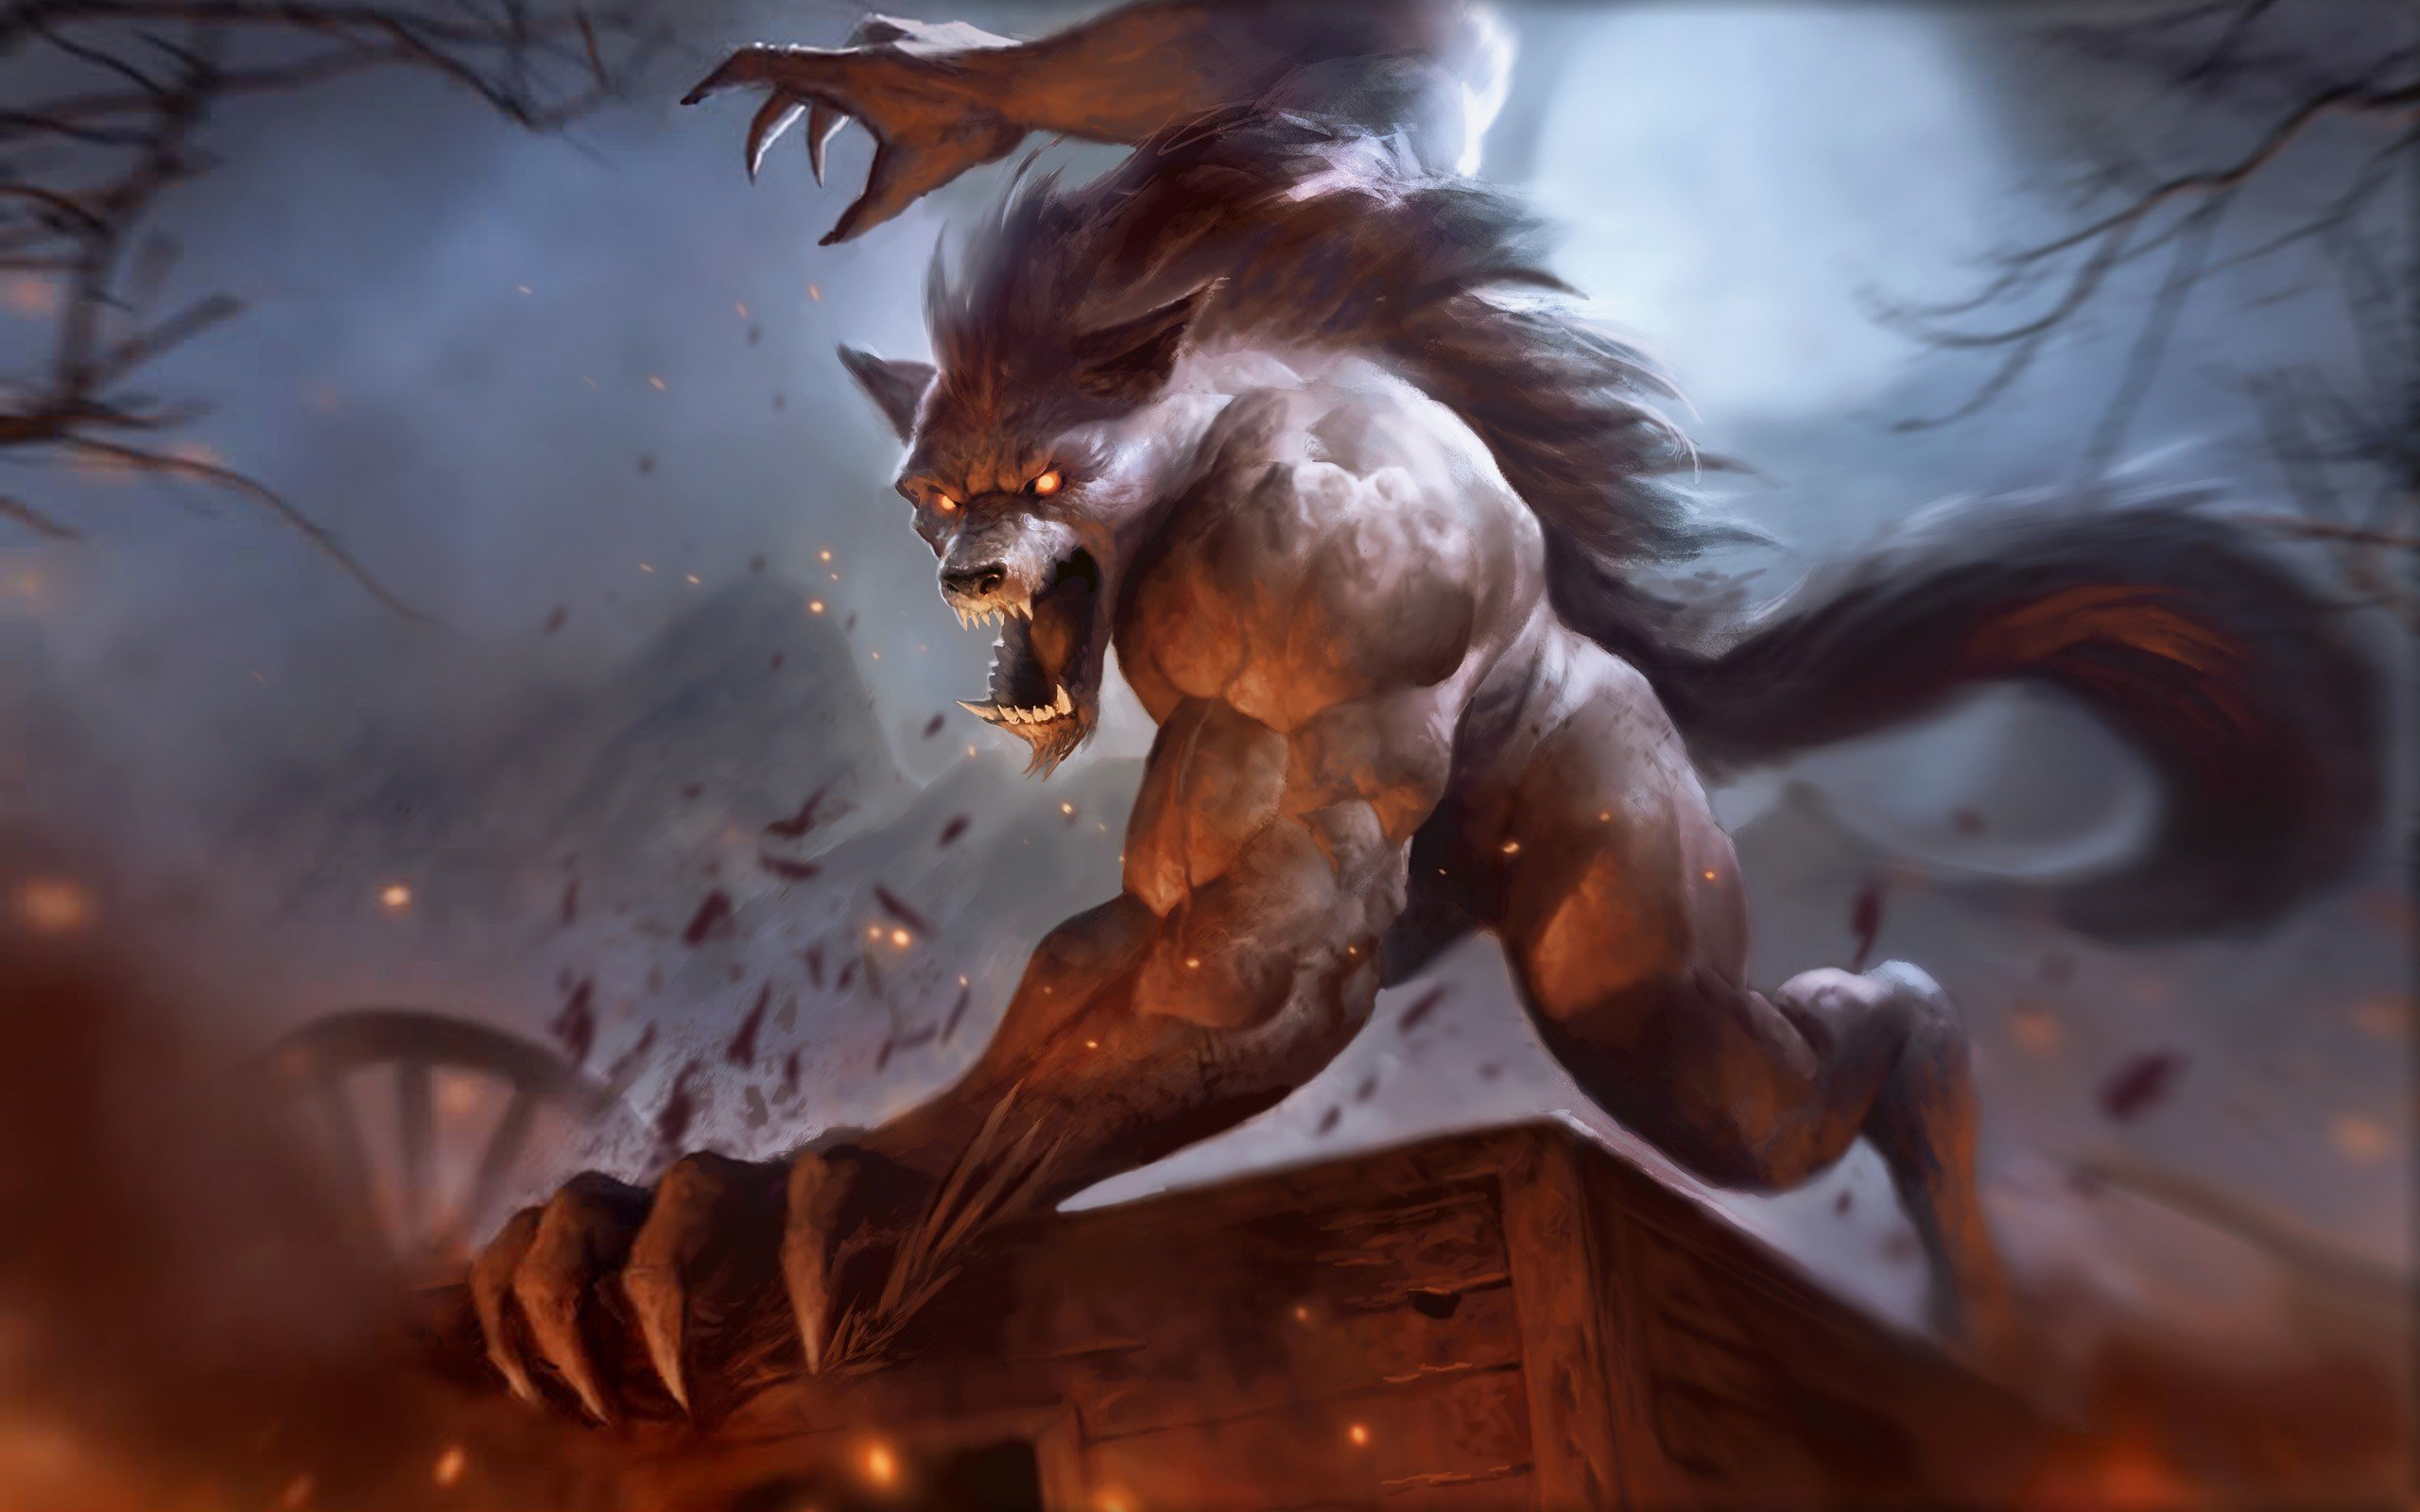 Very scary beast wallpapers and images   wallpapers pictures photos 2560x1600